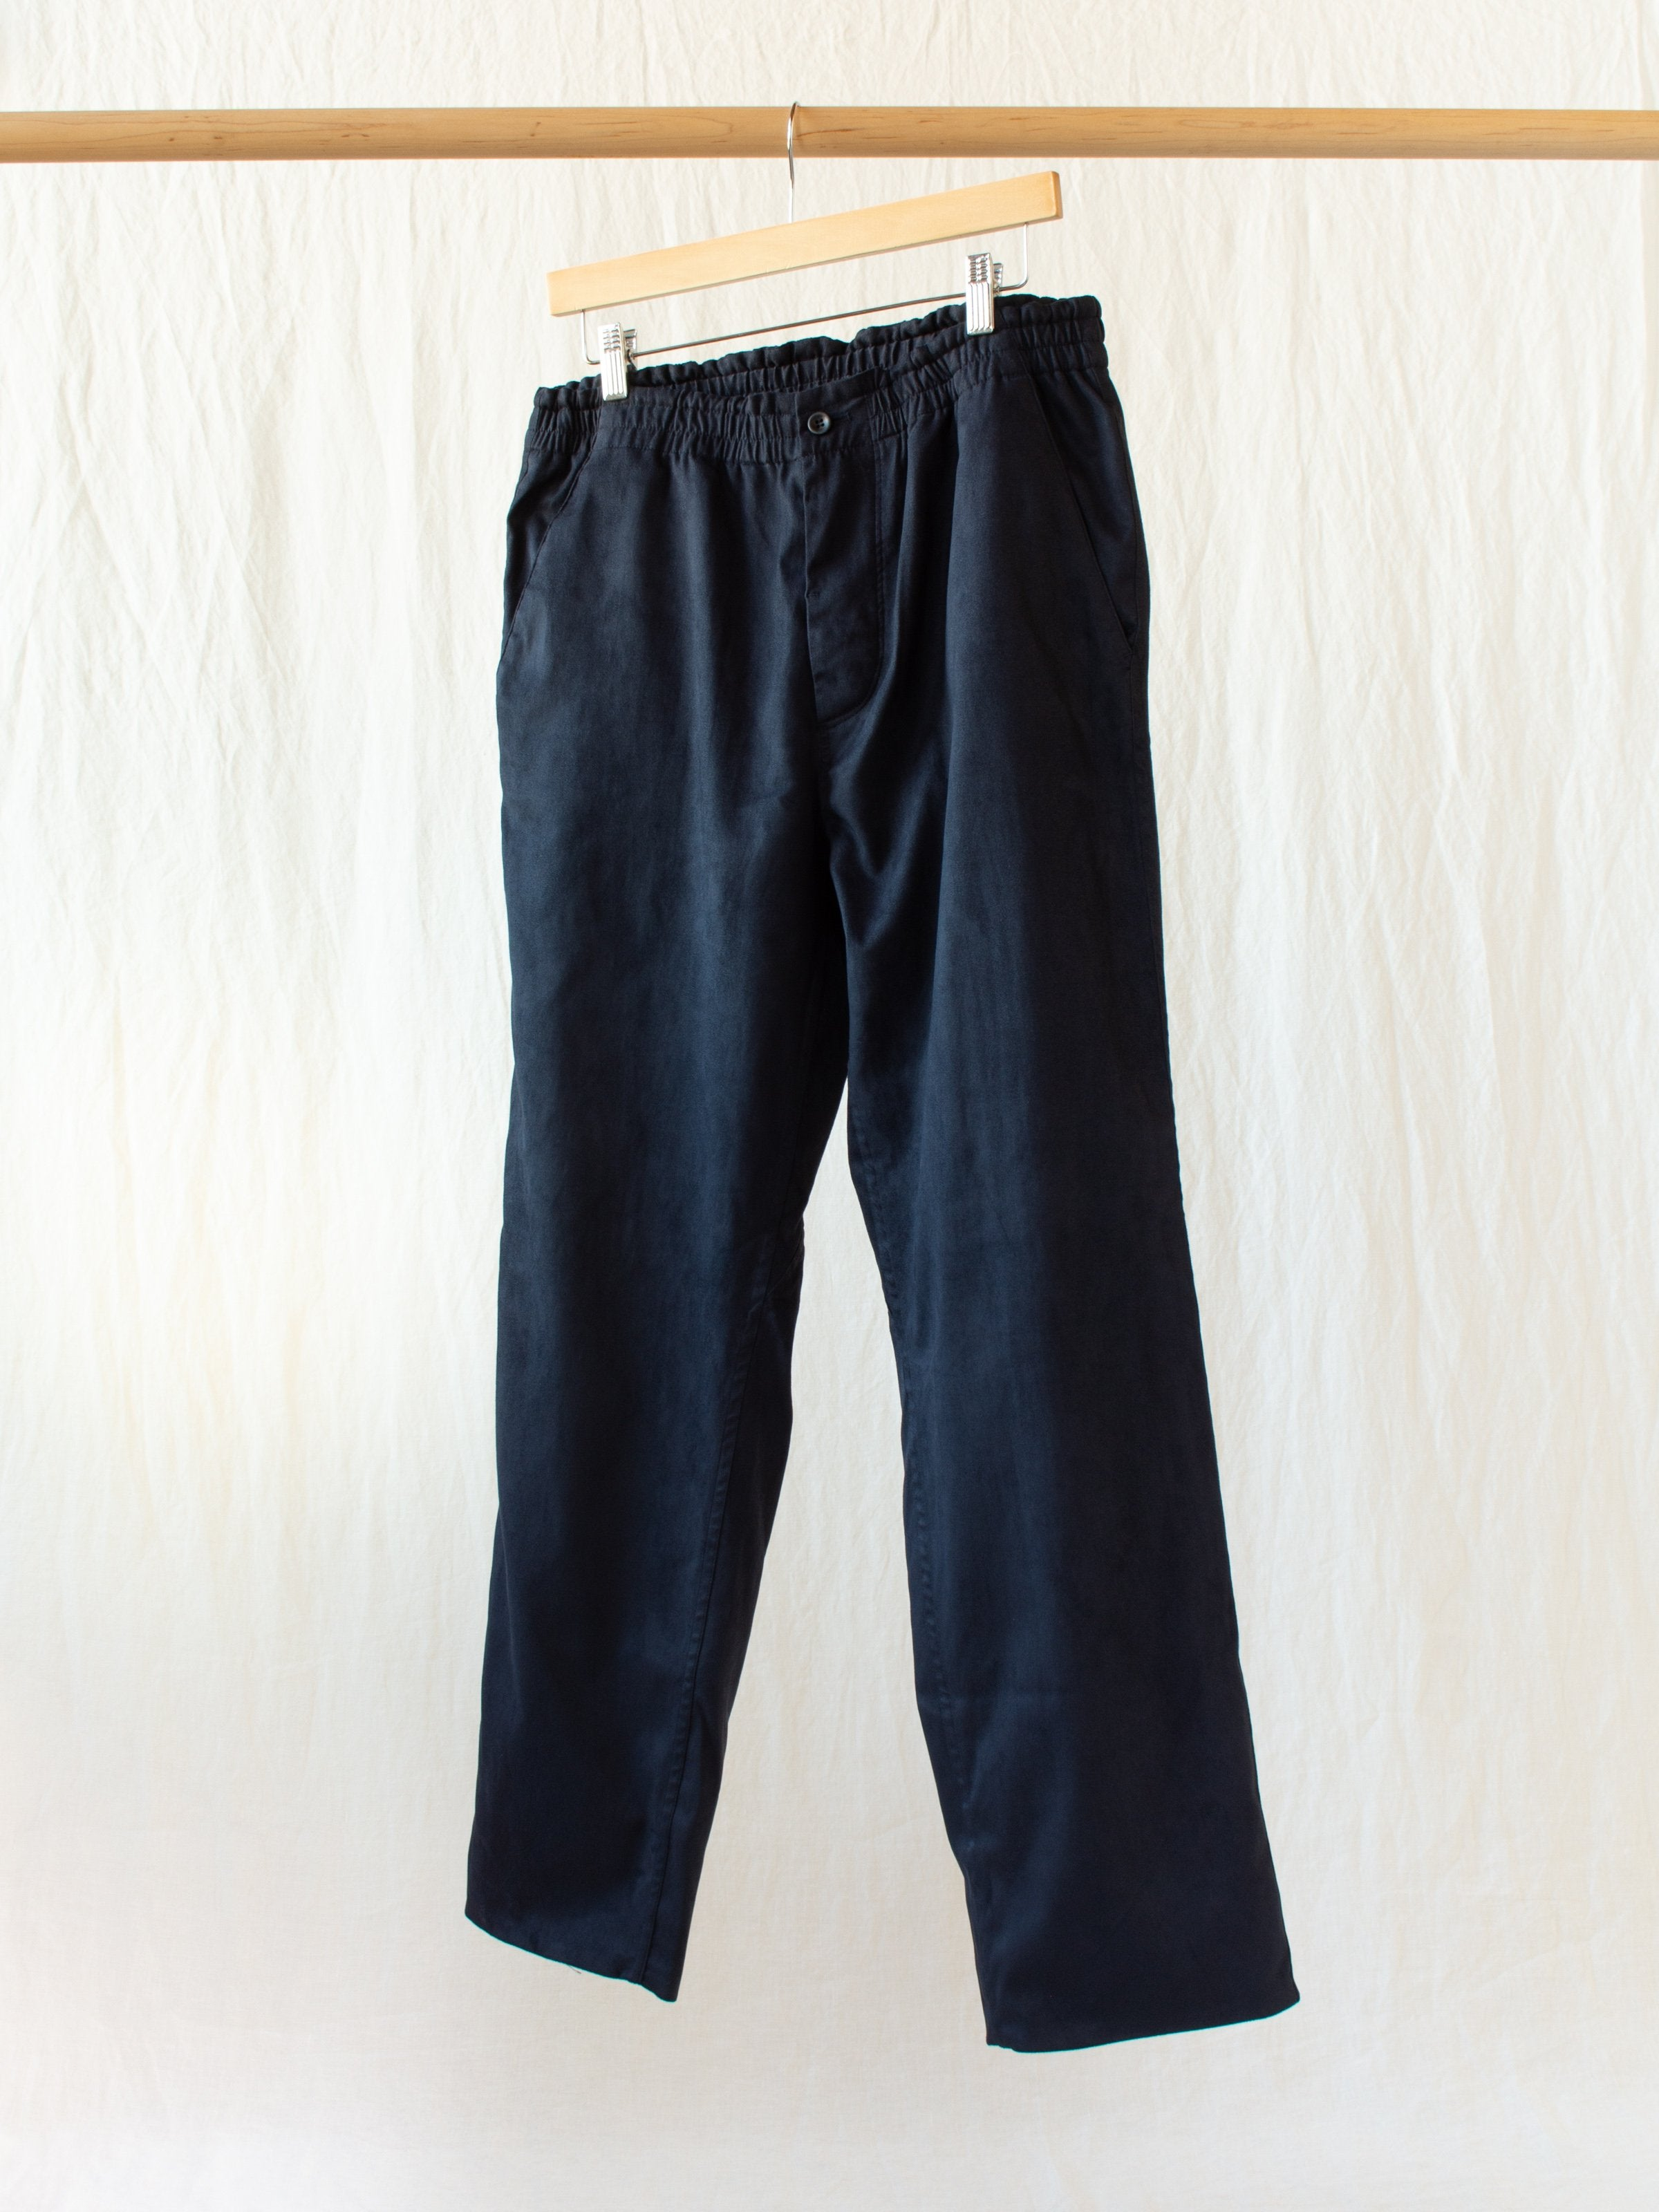 Namu Shop - Document Suede Lining Pants